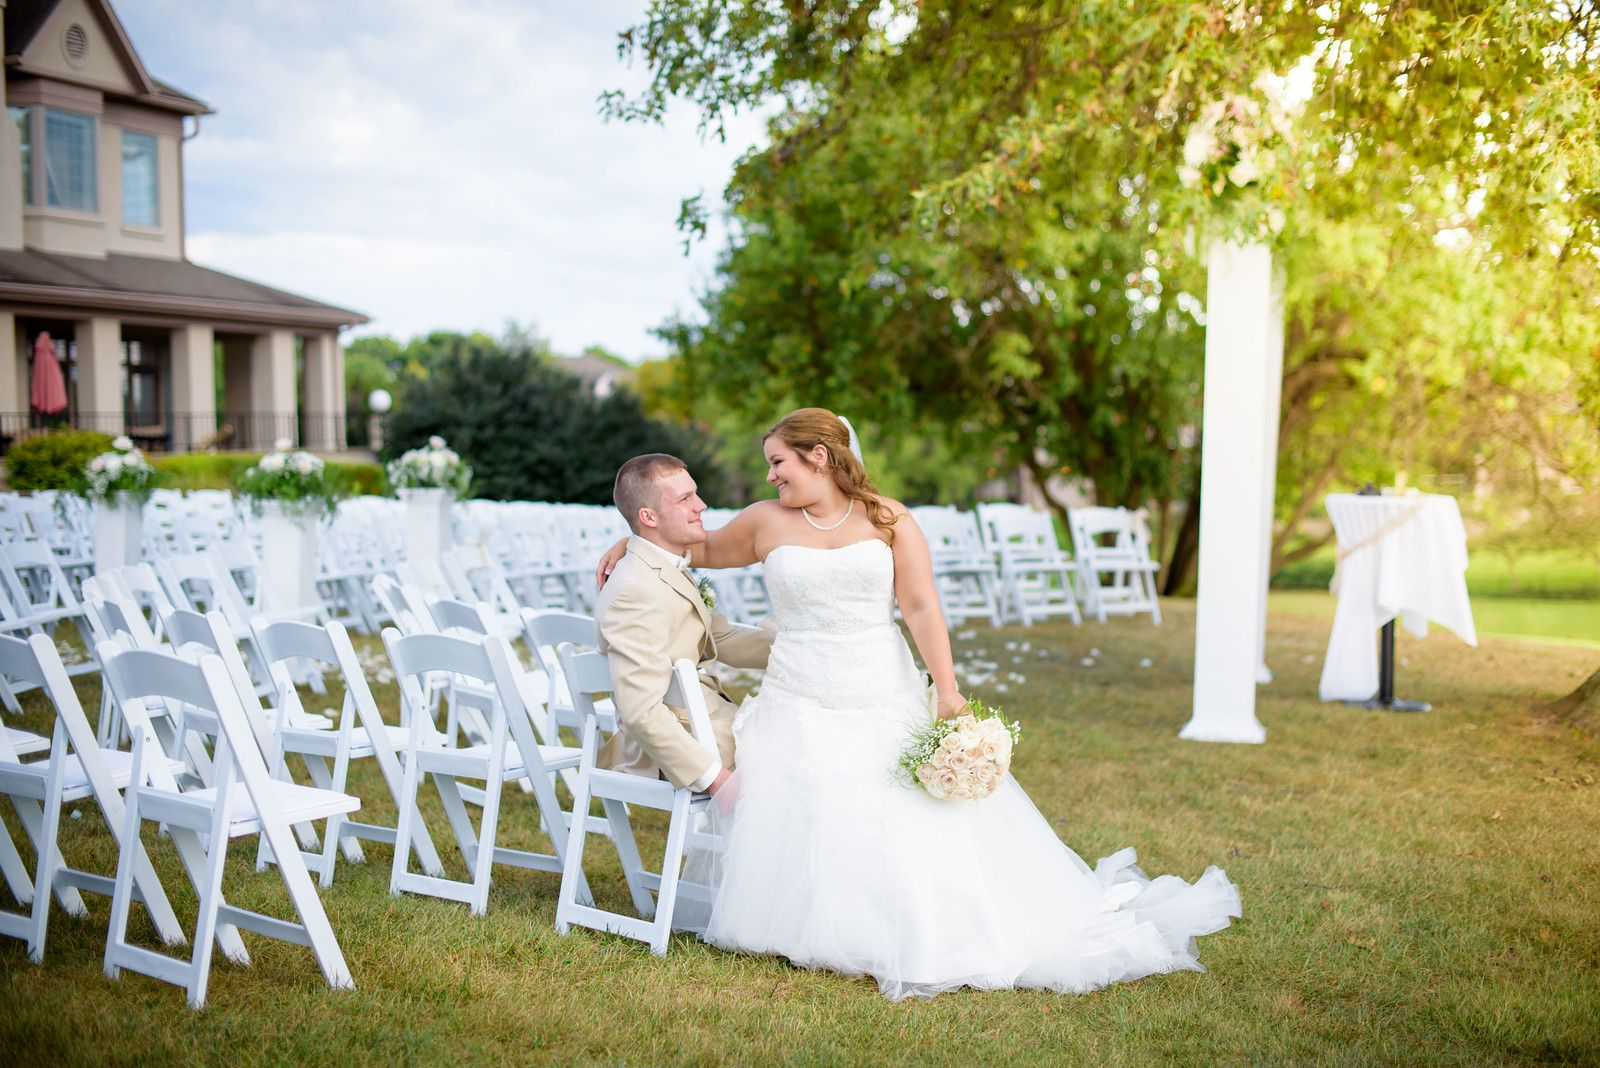 Manley wedding at Oxmoor country club Photography by shannon